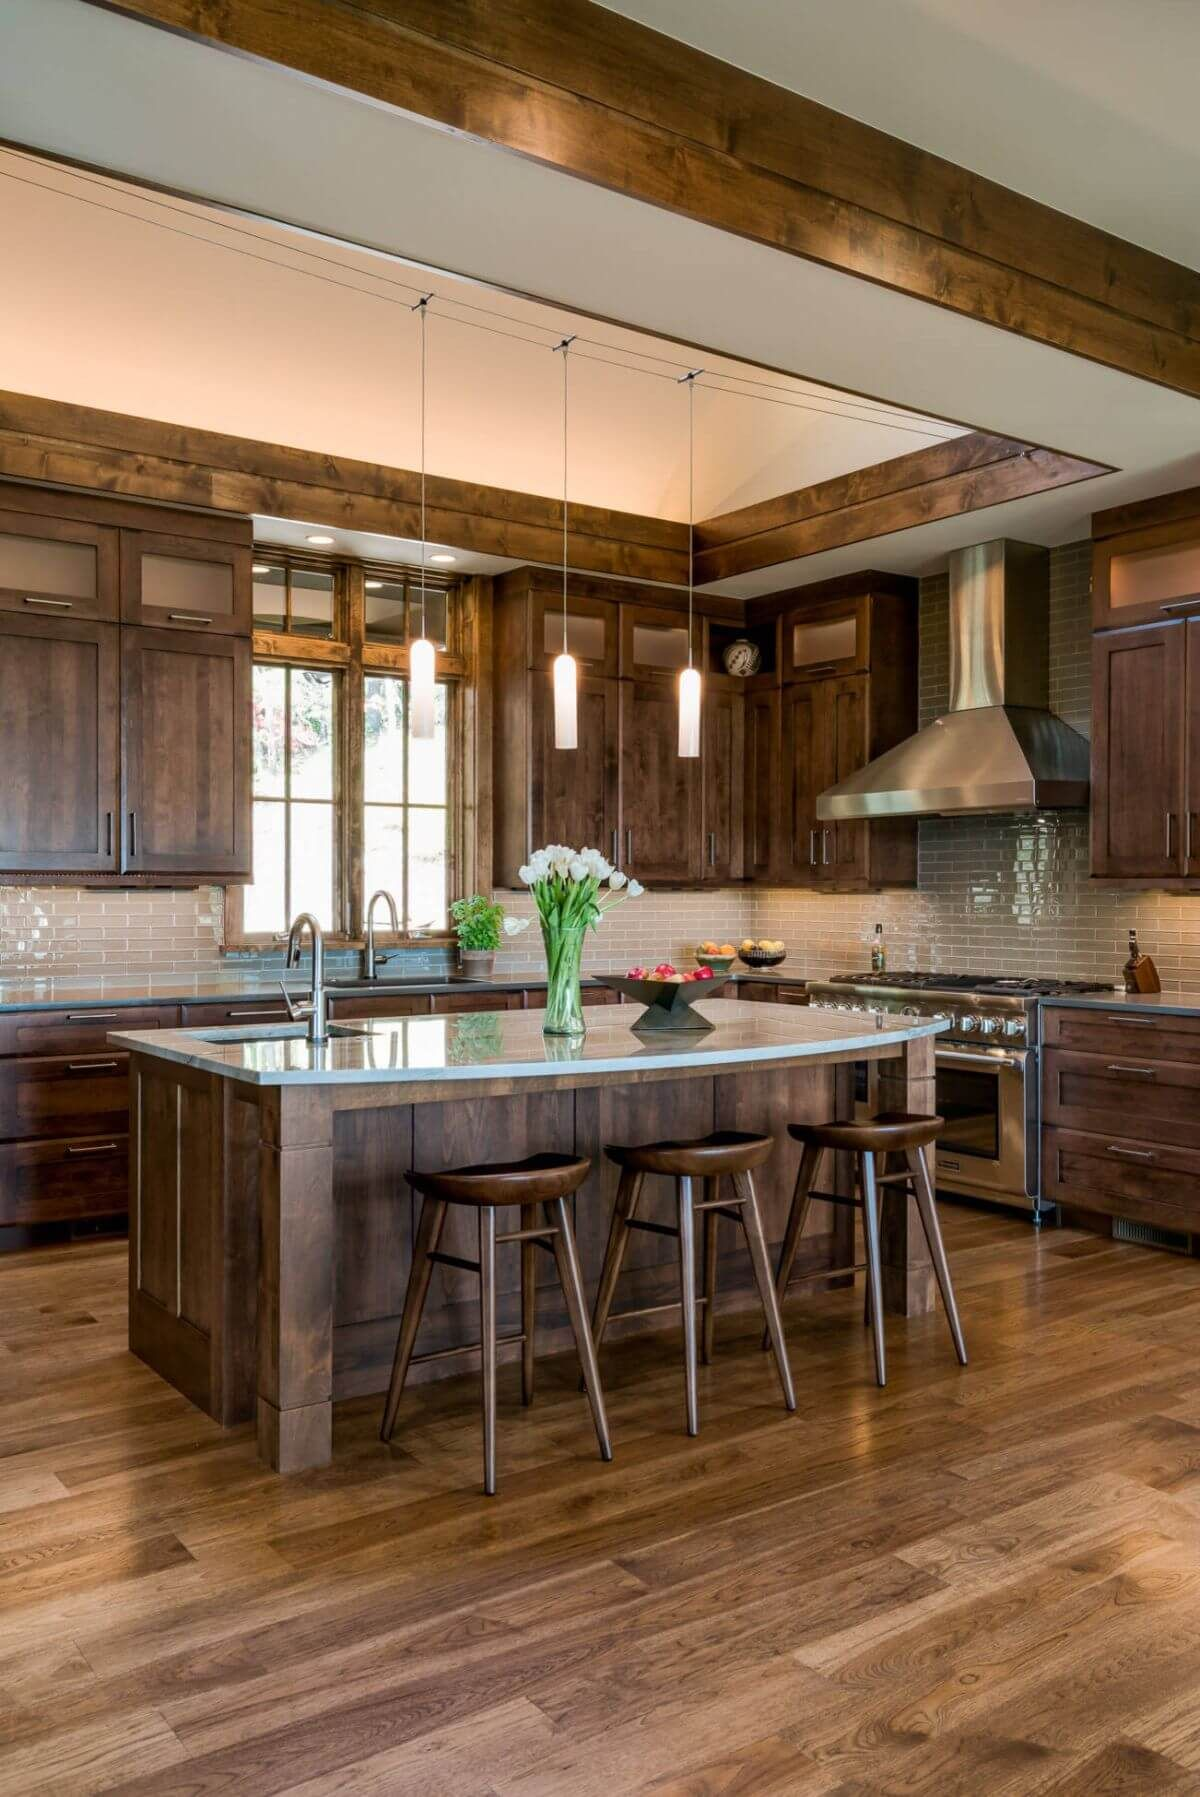 23 Best Ideas Of Rustic Kitchen Cabinet You Ll Want To Copy Tuscan Kitchen Rustic Kitchen Cabinets Kitchen Design